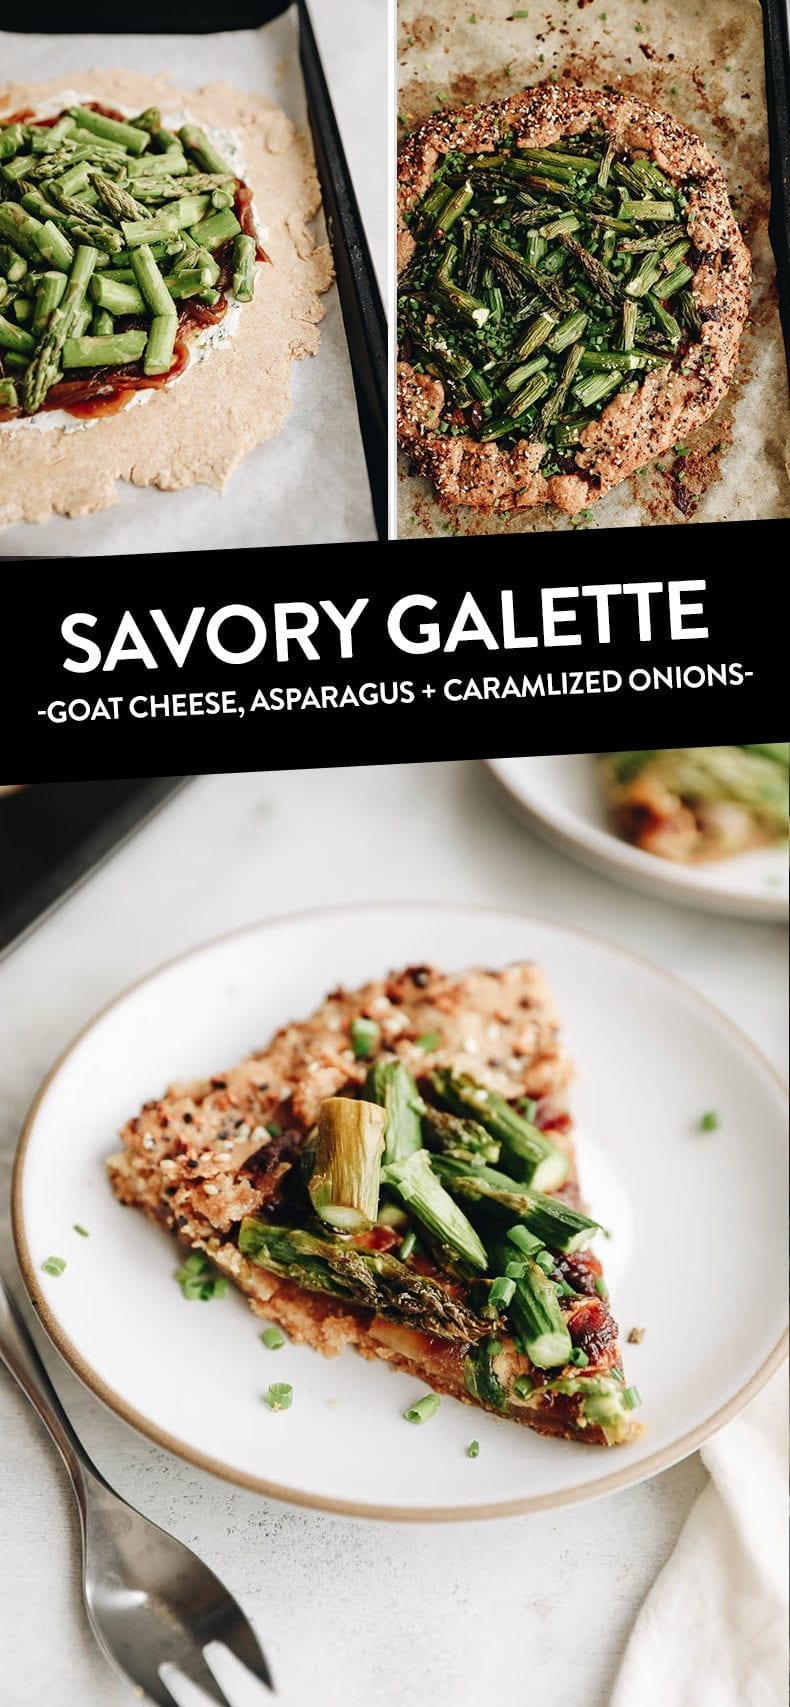 Get a taste of summer with this savory galette recipe with goat cheese, asparagus and caramelized onions. Made with a spelt crust and savory veggie goat cheese base for a delicious meal the whole family will enjoy. #galette #summergalette #savorygalette